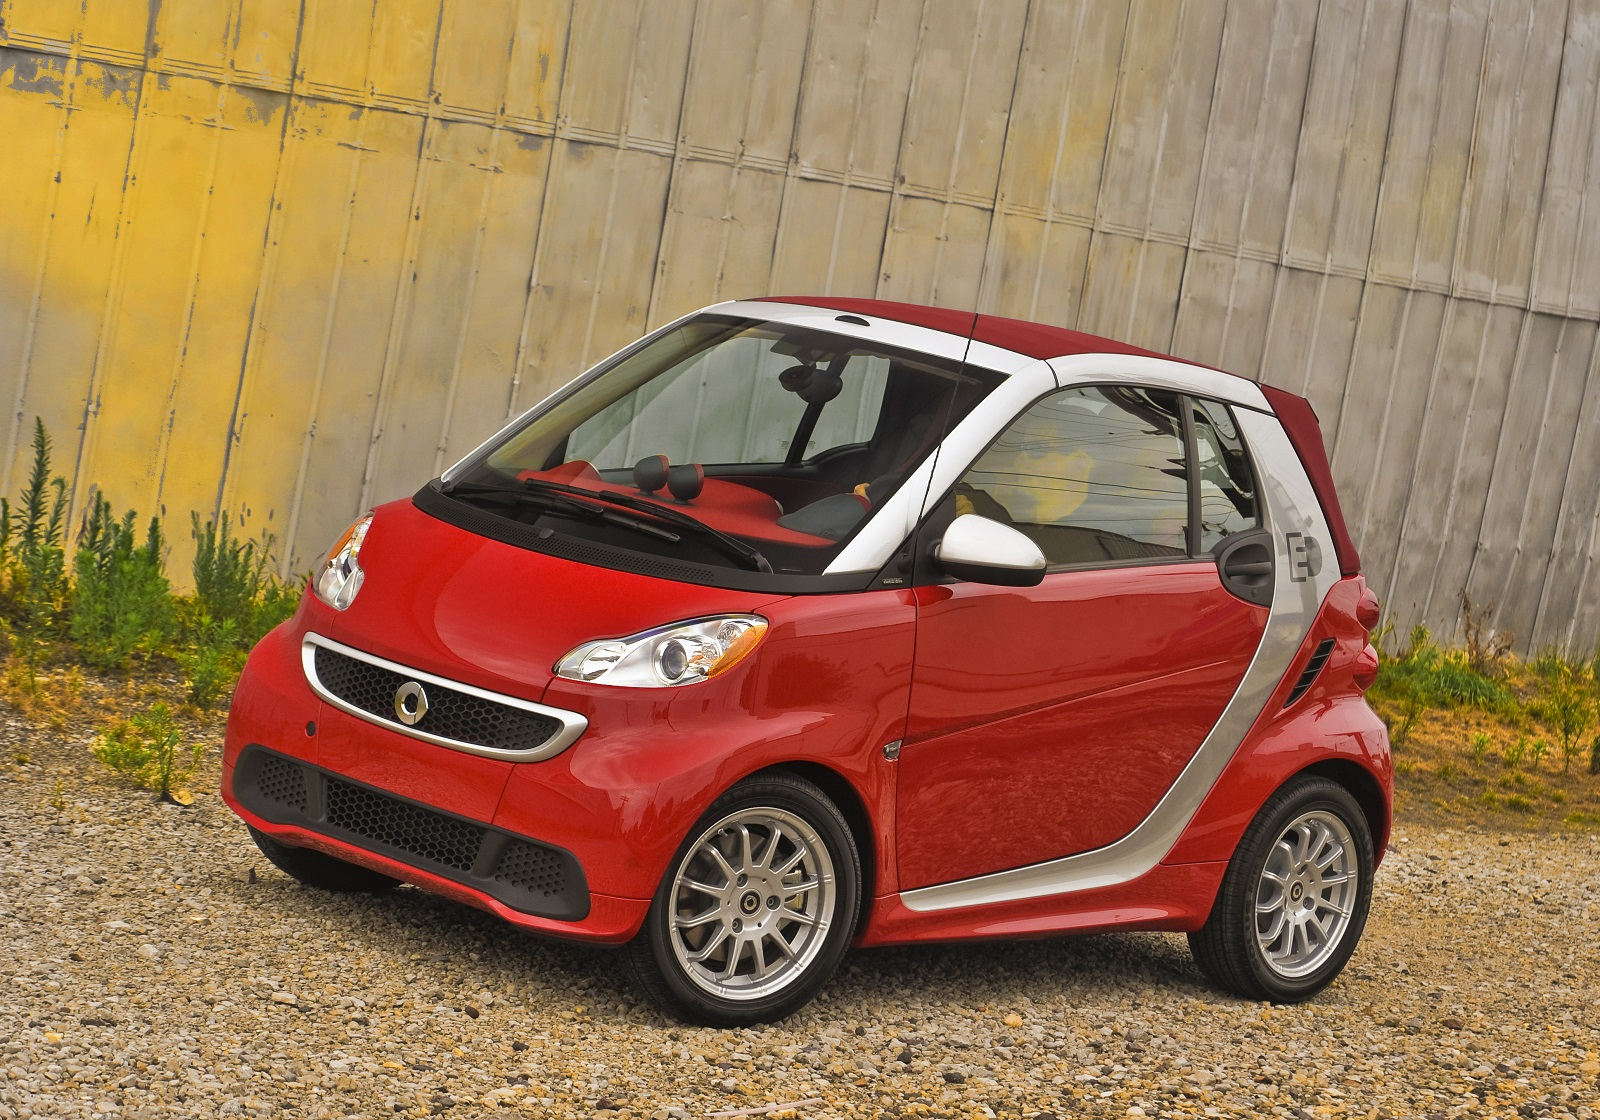 Mercedes Smart Car >> Tiny Smart Cars Lose 5 Billion For Mercedes Benz Report